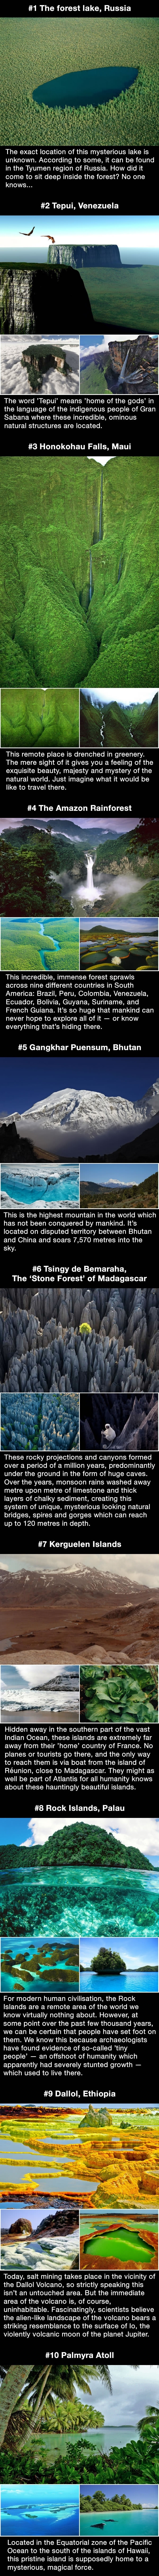 Incredible and mysterious places untouched by mankind